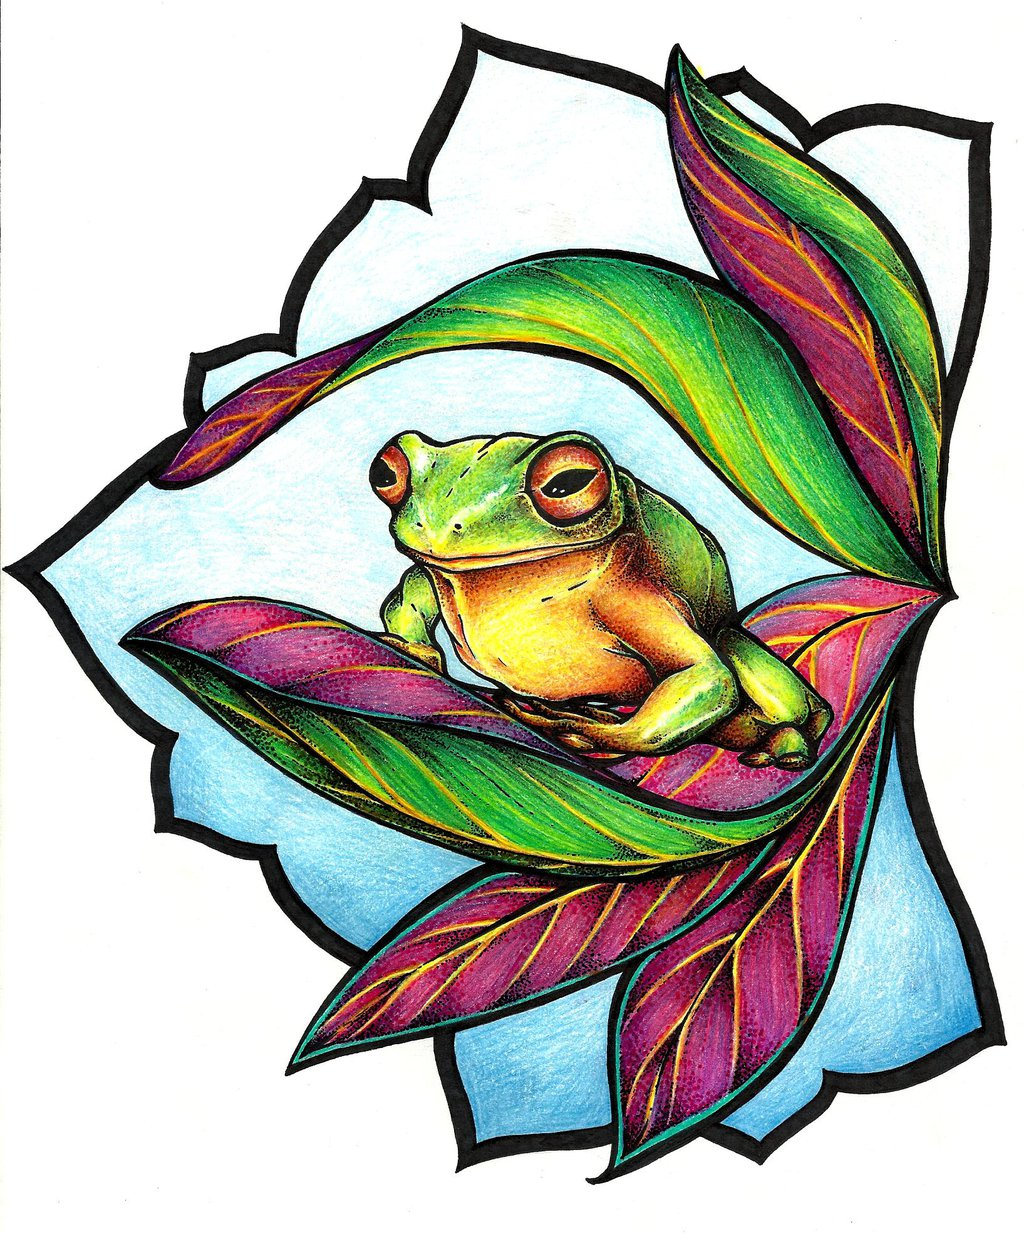 frog tattoo design by mijazaszka on deviantART